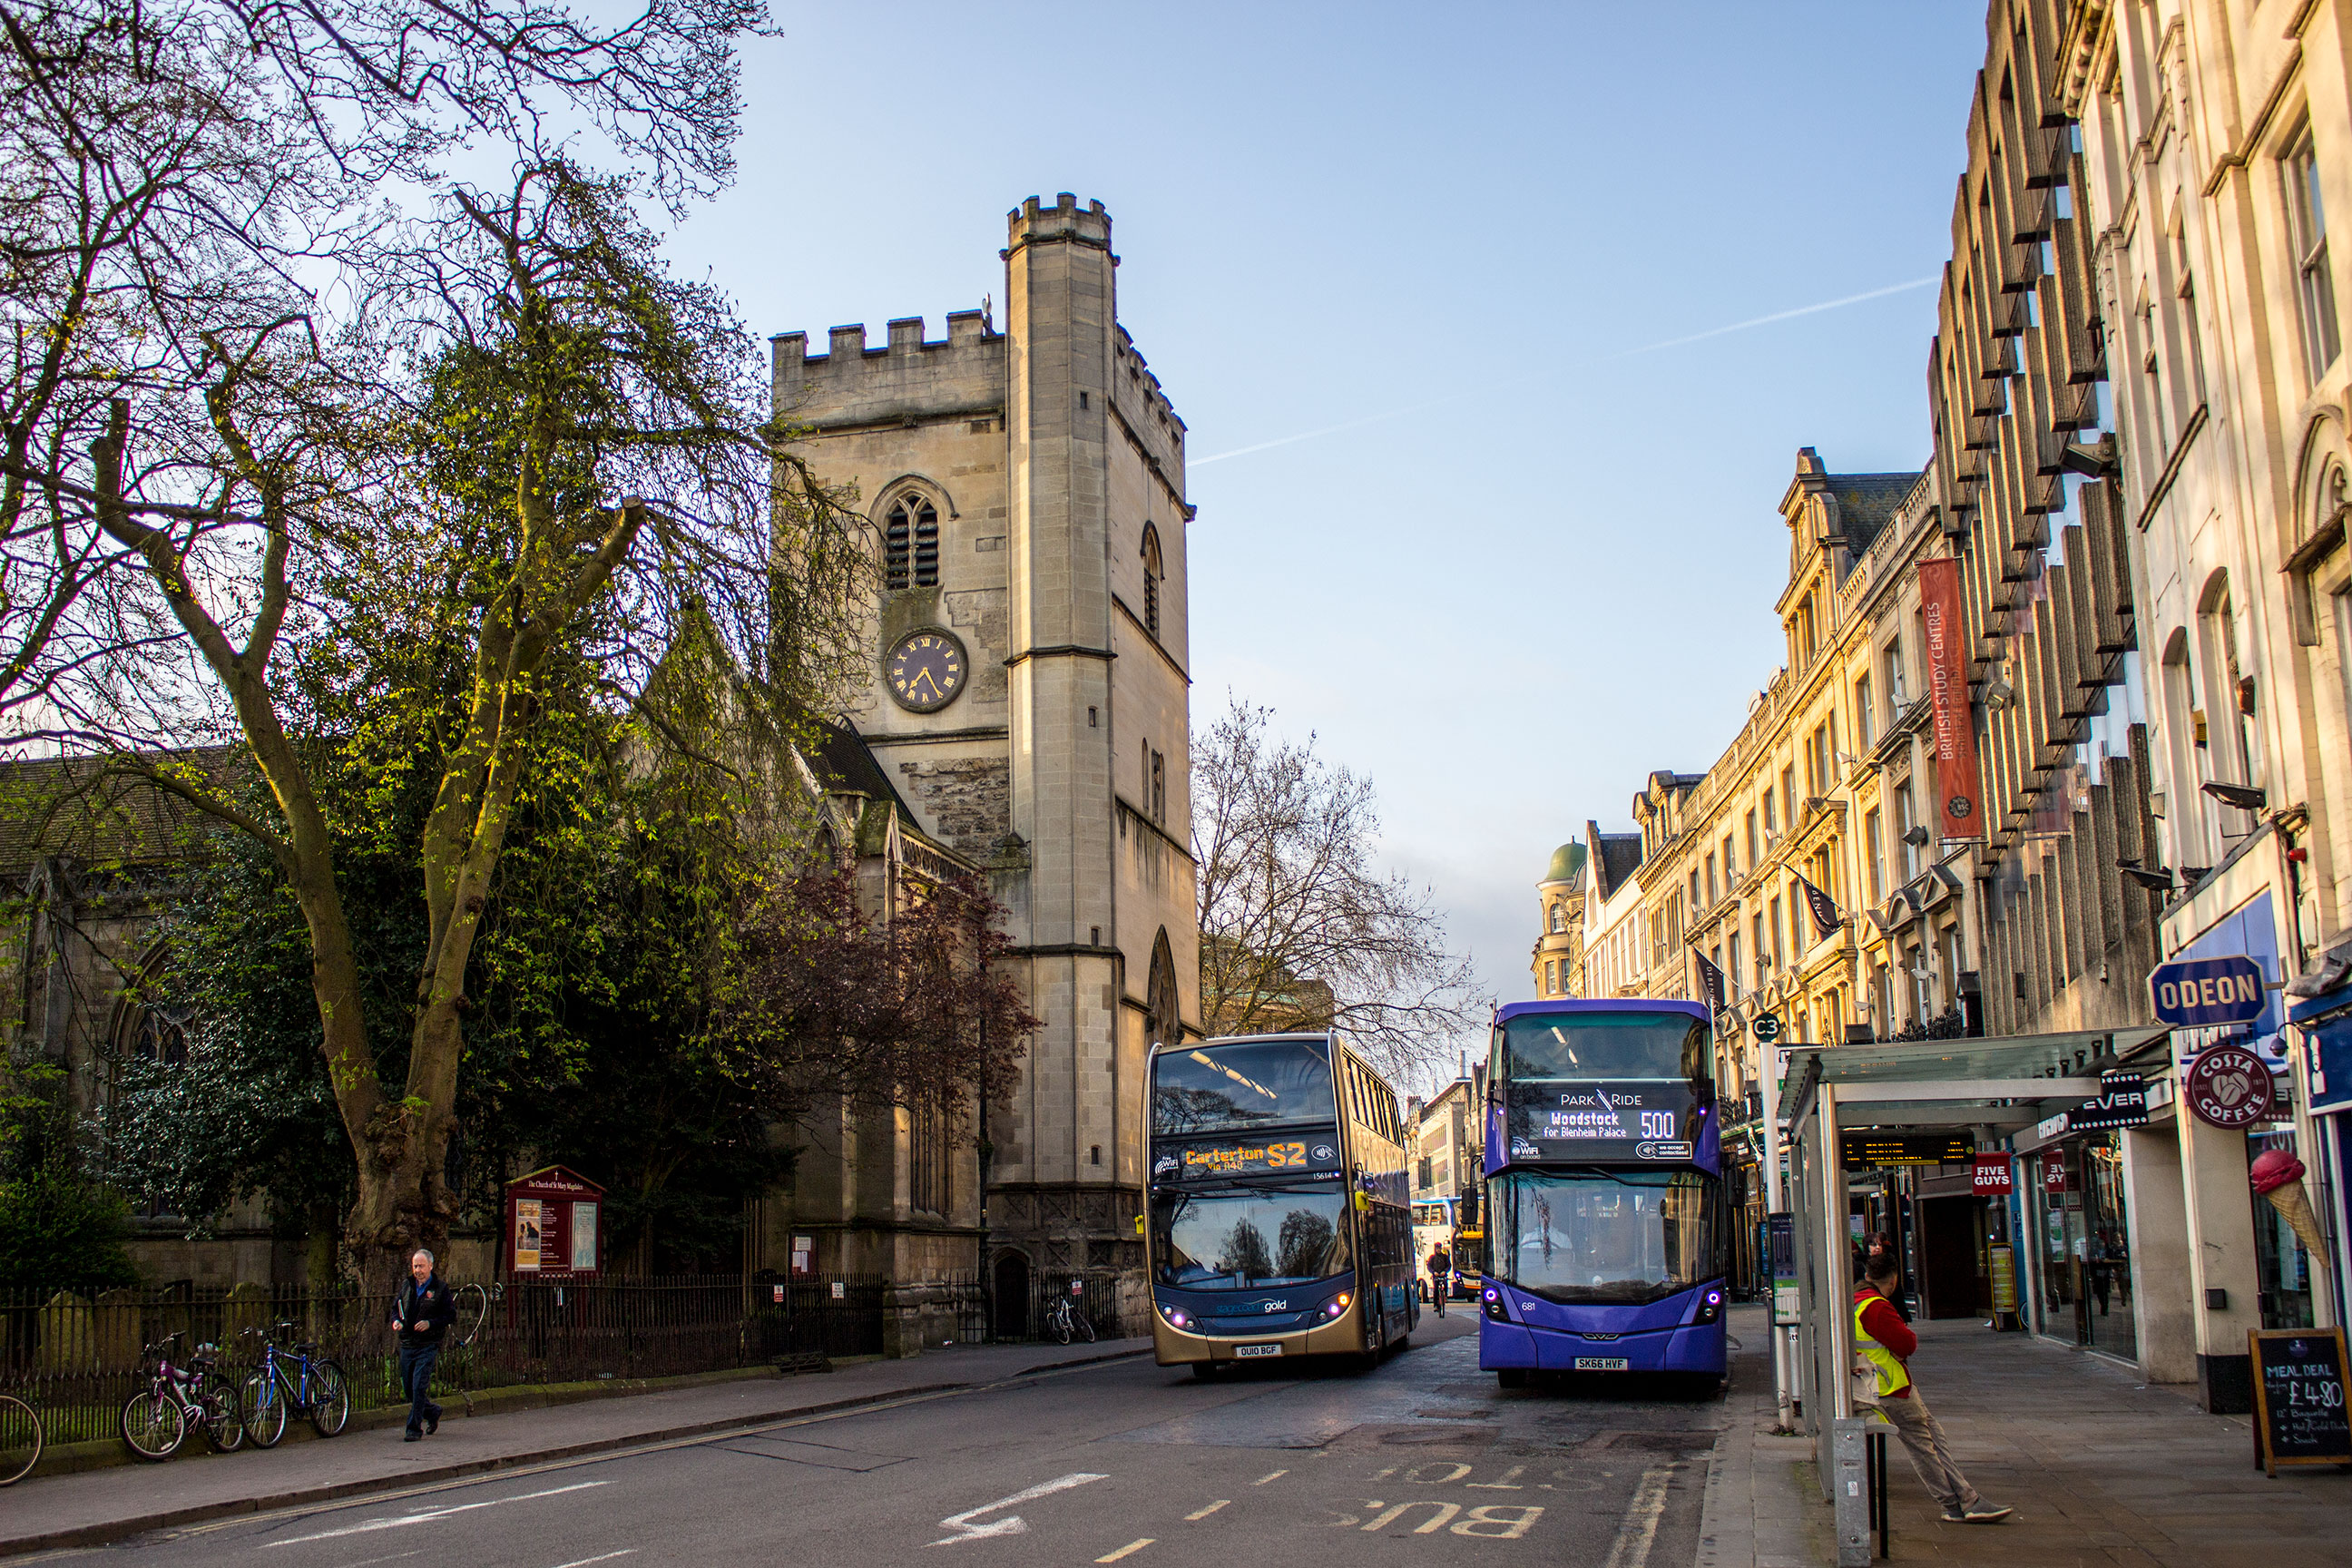 A Stagecoach Gold branded Enviro 400 MMC meets an Oxford Park & Ride branded Wright Streetdeck in central Oxford's Magdalen Street